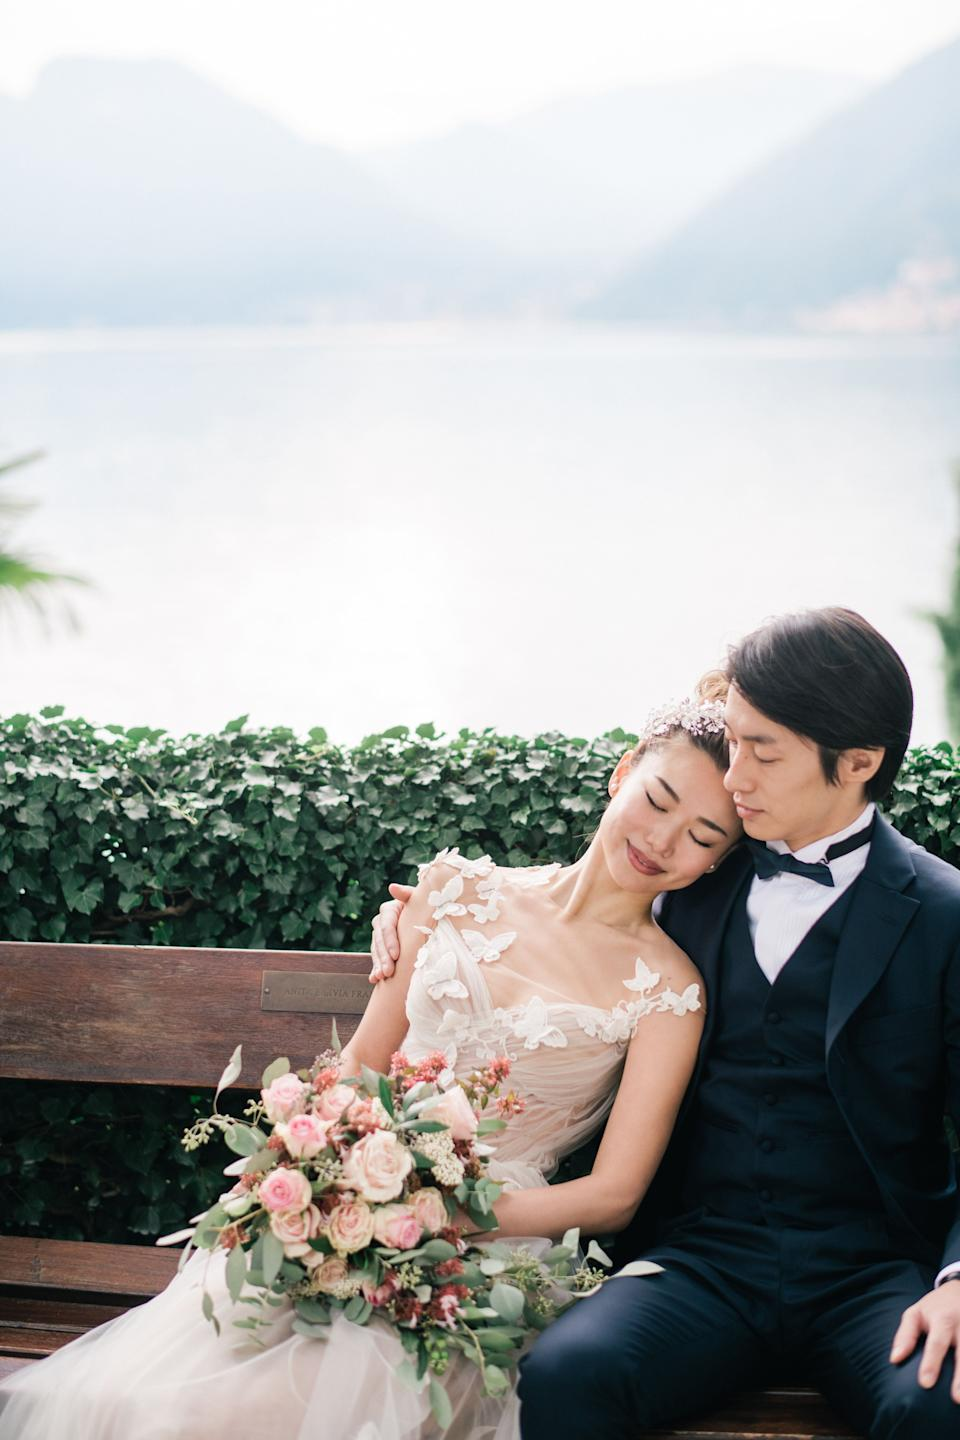 """Due to travel restrictions, their loved ones were unable to fly in from Japan for the occasion. (Photo: <a href=""""https://www.manisolwedding.com/"""" target=""""_blank"""">ManiSol Wedding </a>)"""